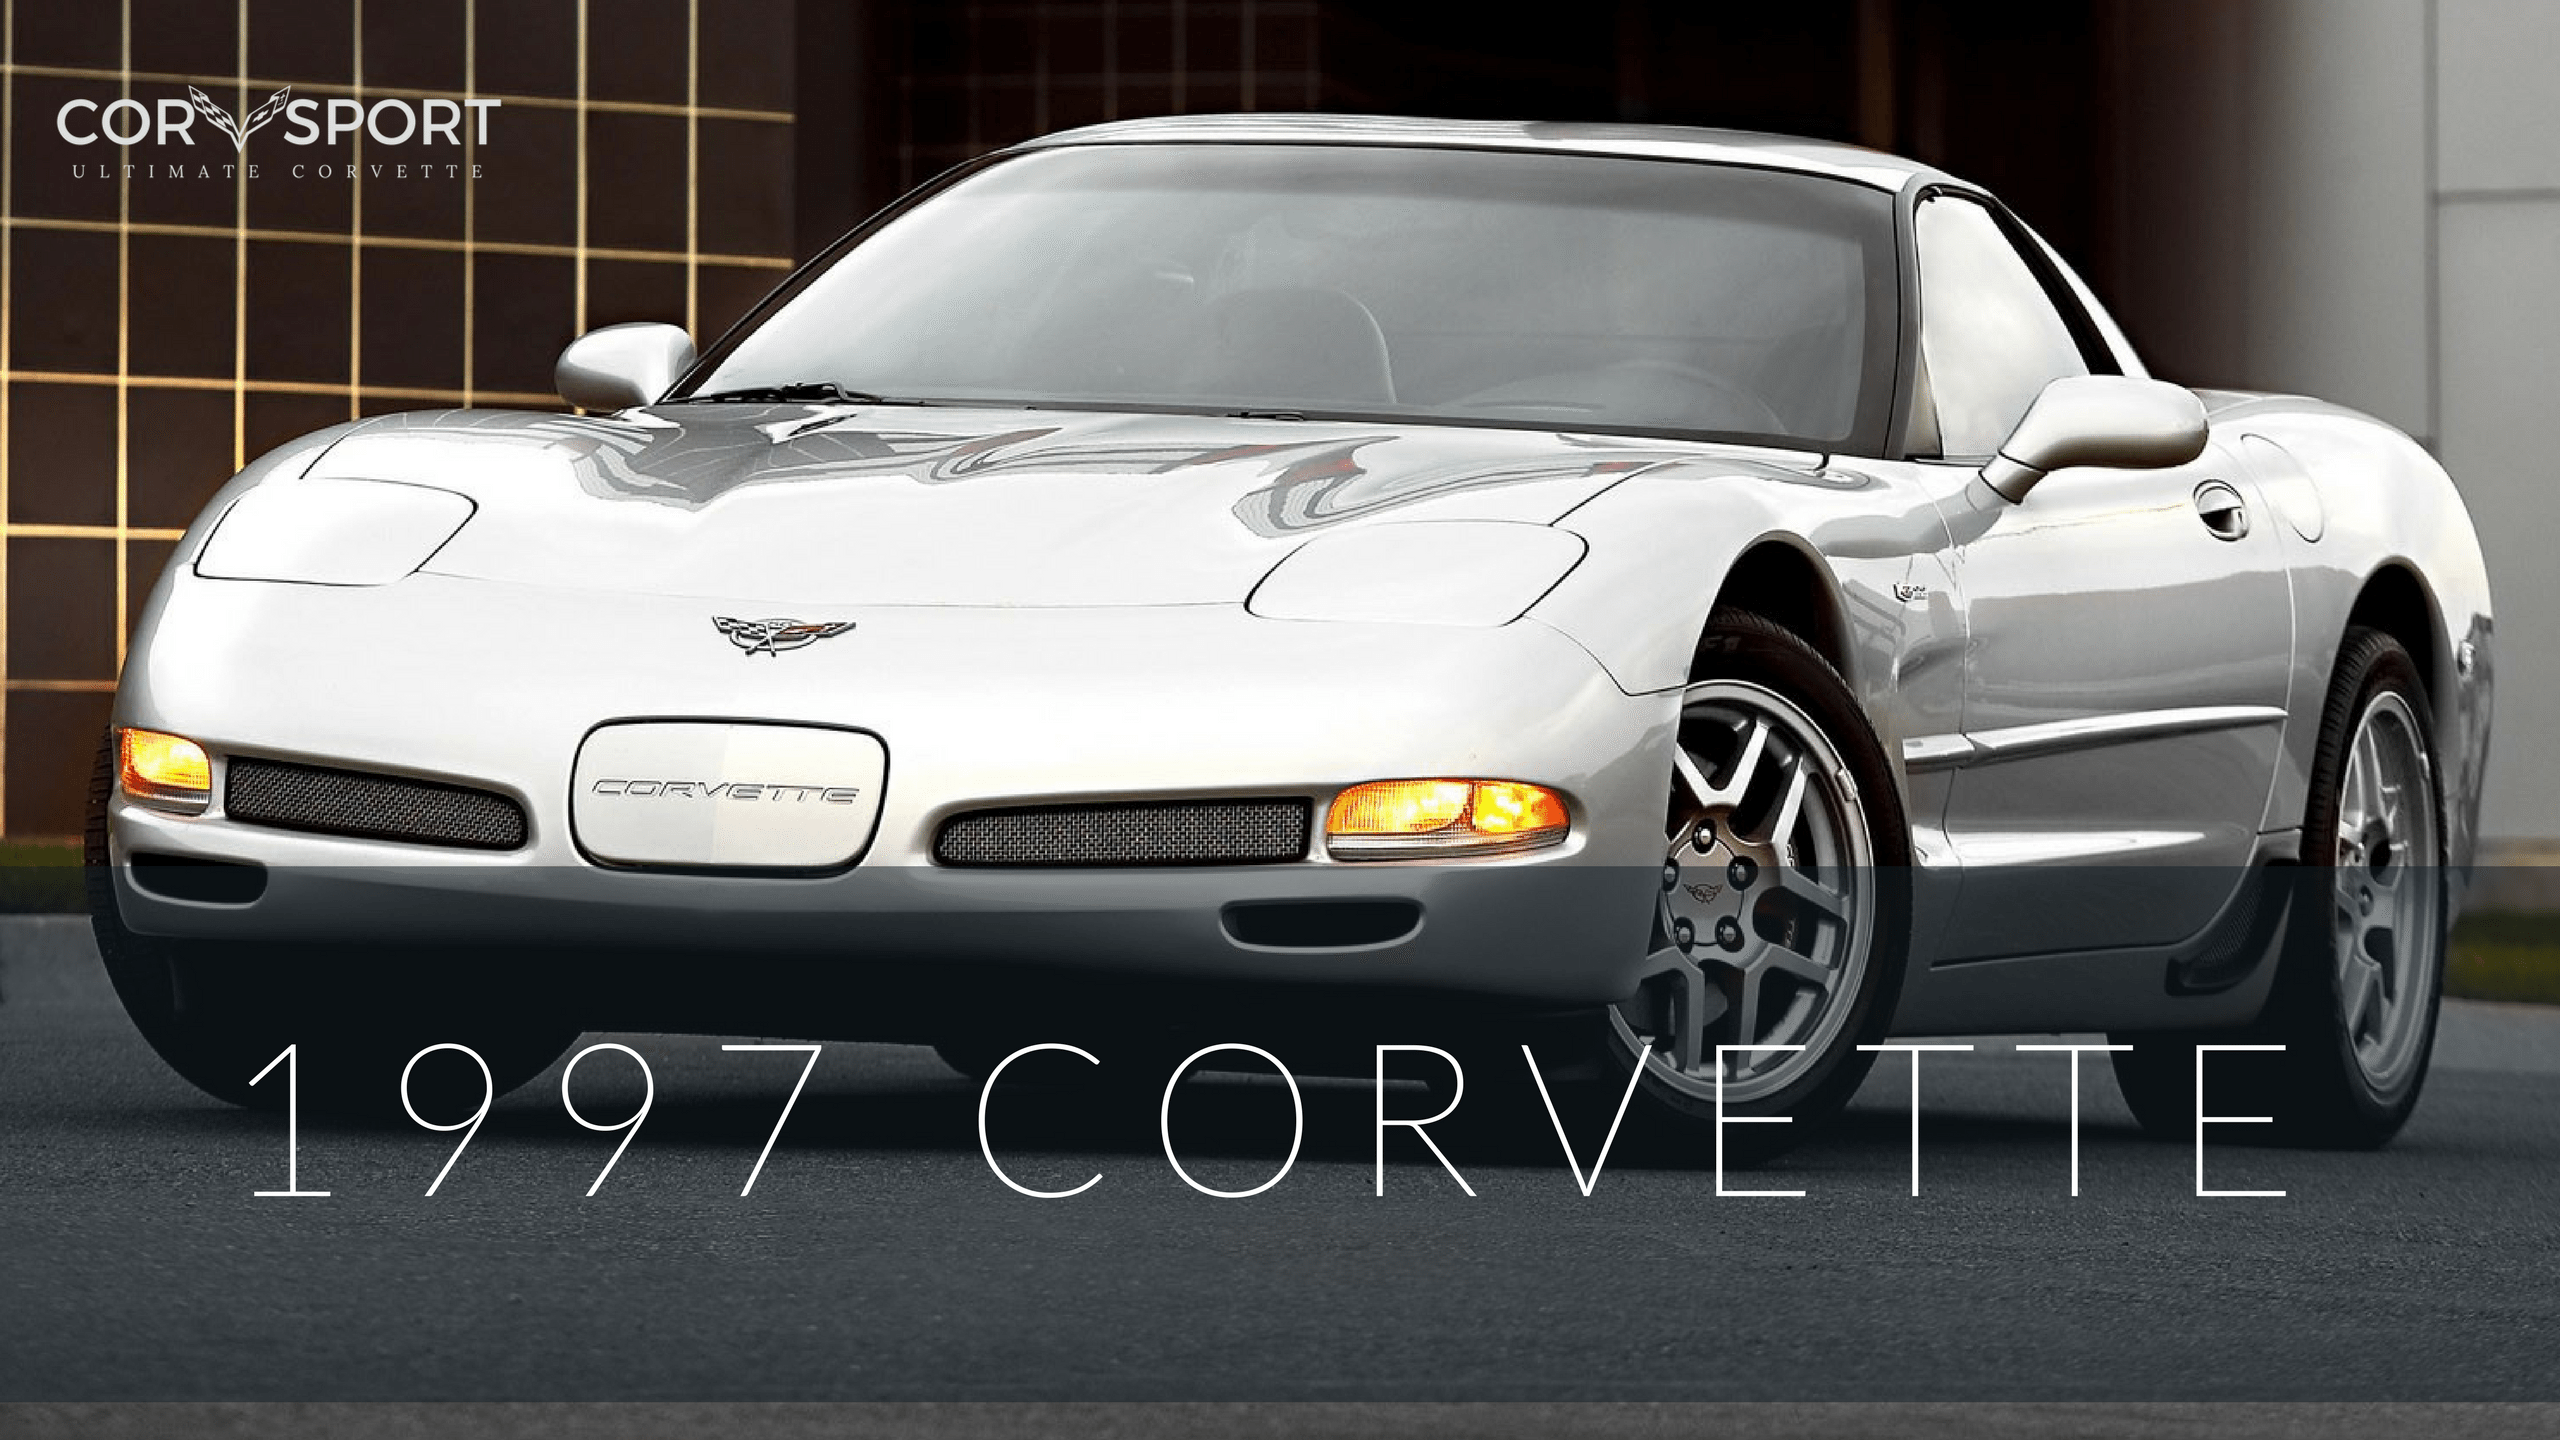 1997 Corvette Tile 1997 c5 corvette ultimate guide (overview, specs, vin info C5 Corvette Fuse Layout at soozxer.org